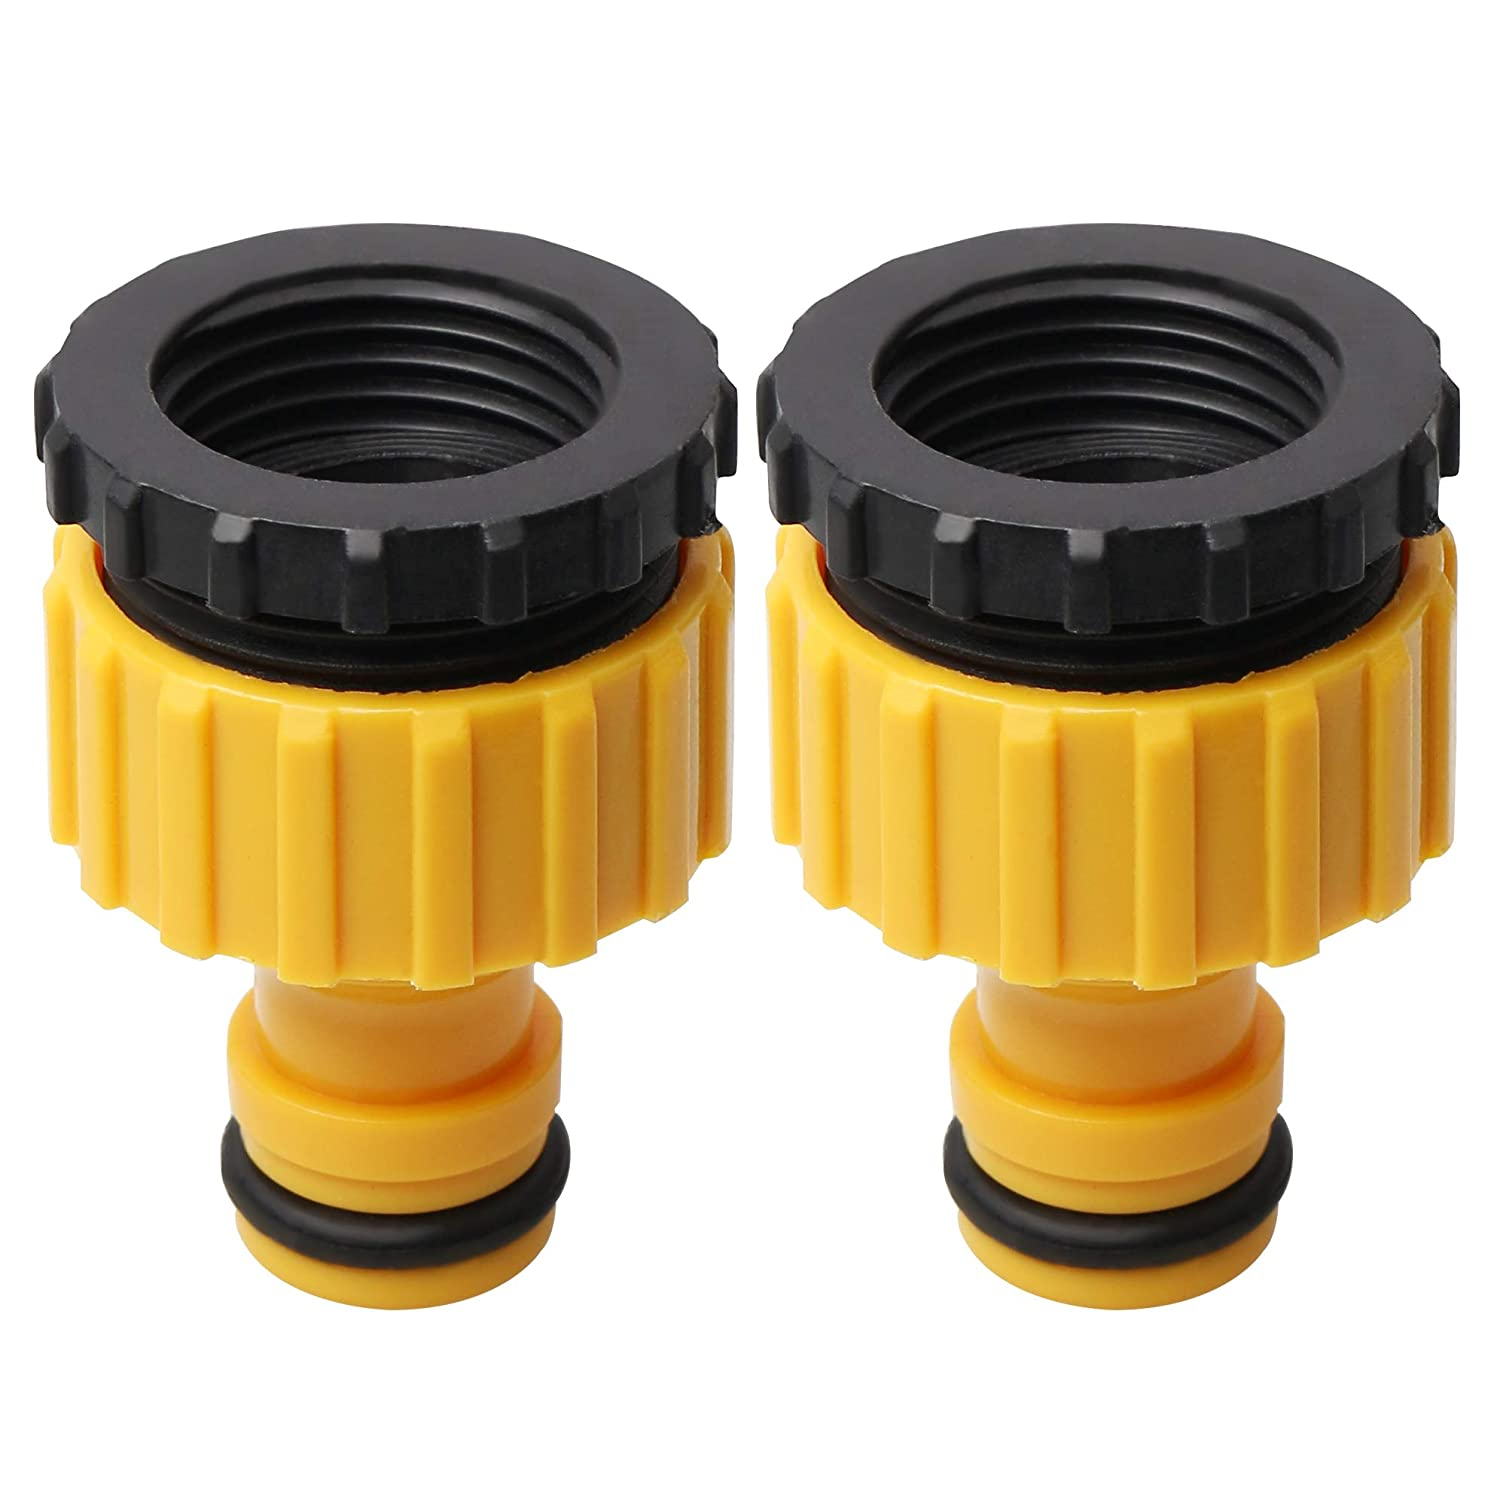 nuosen 2 Pack Plastic Garden Hose Tap Connector, Threaded Faucet Adapter